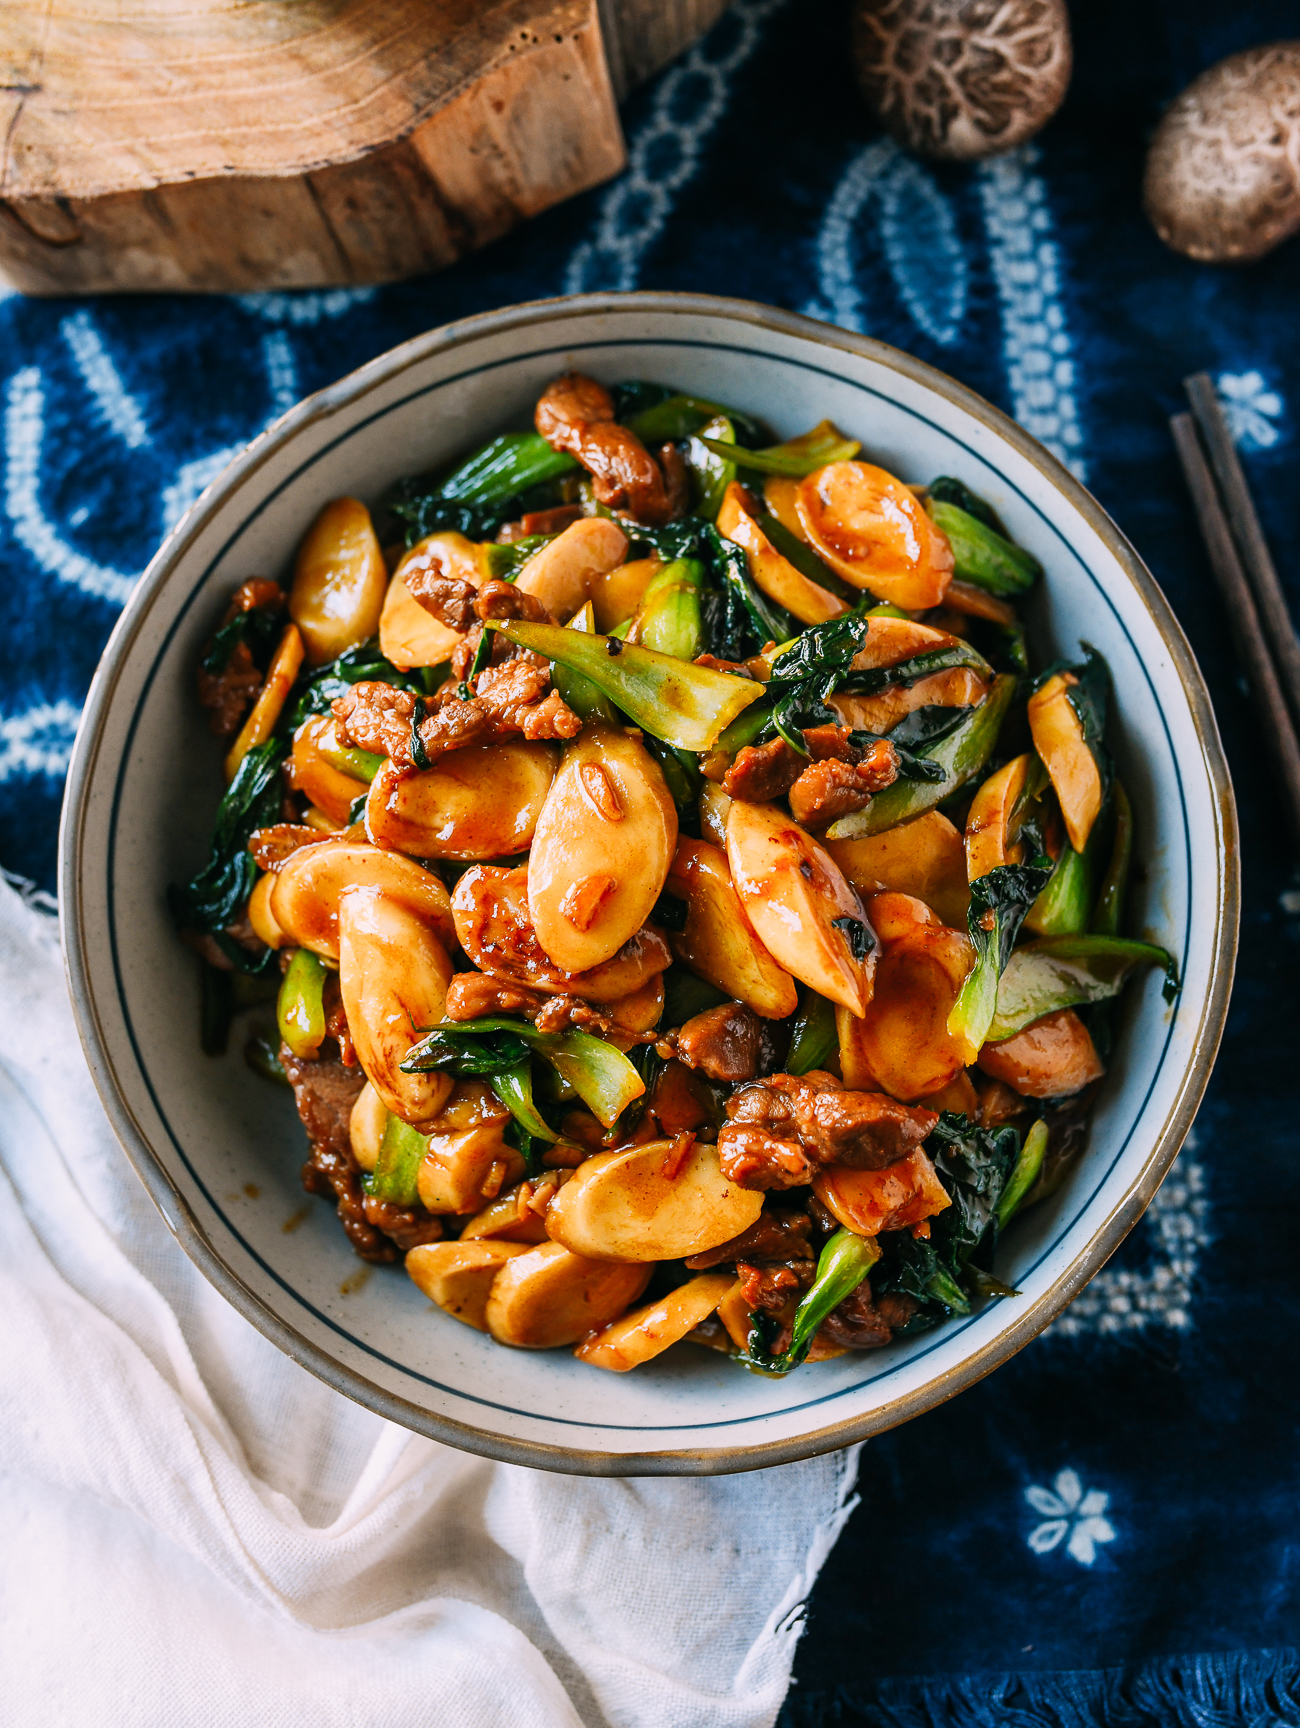 Chinese Stir-fried Rice Cakes